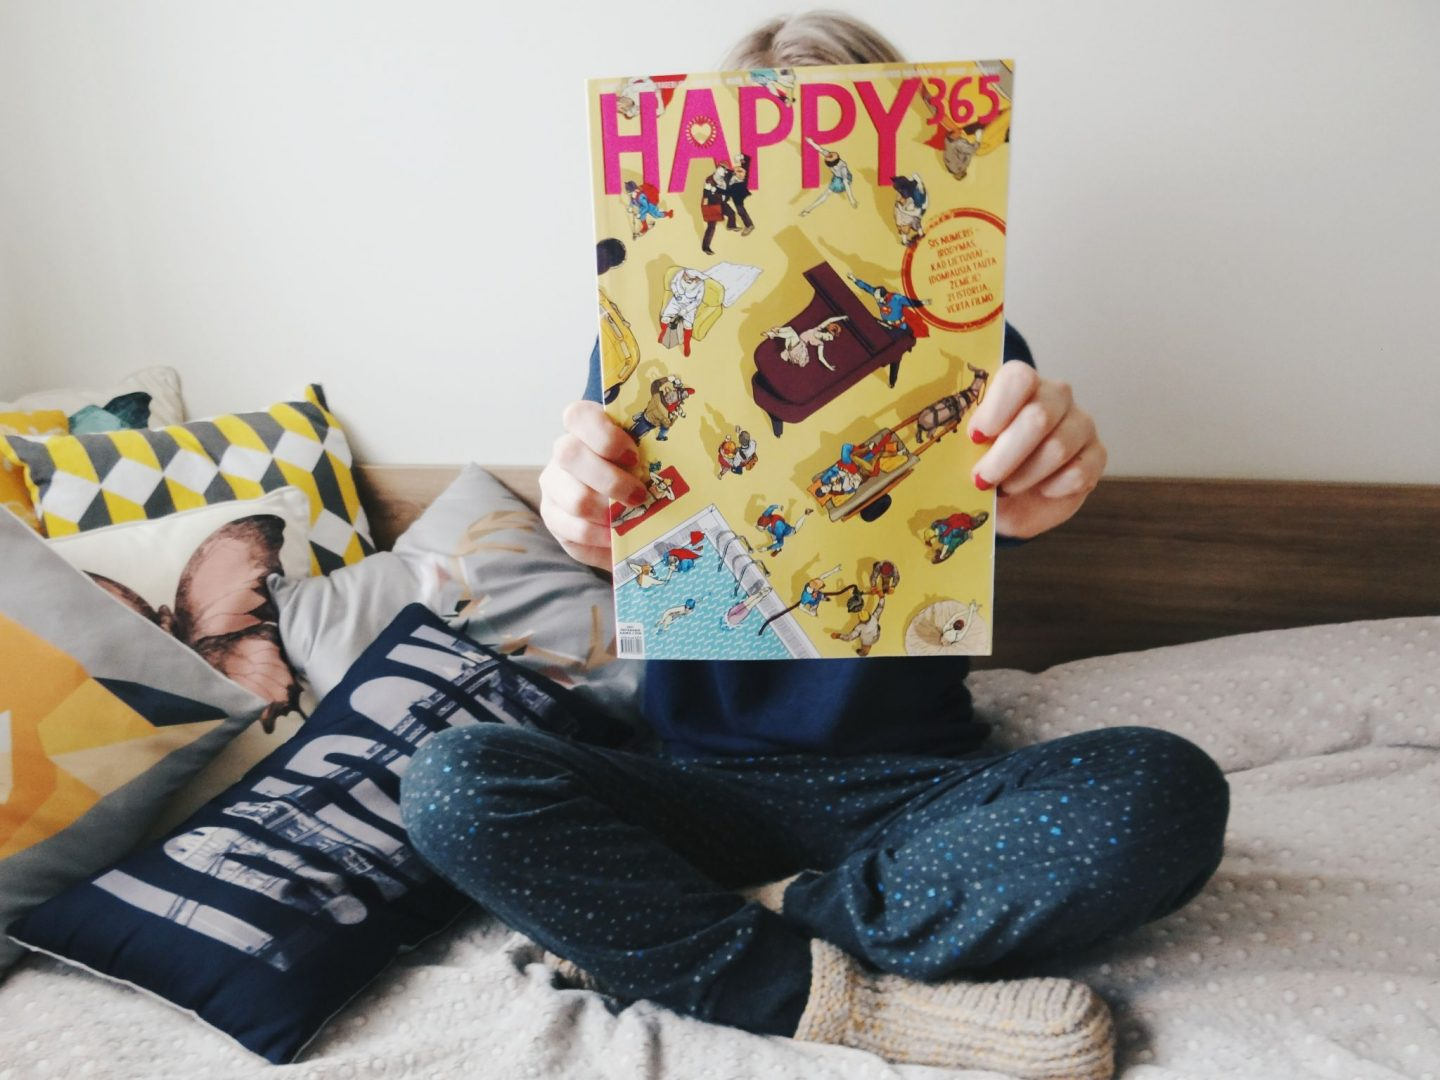 5 Ways To Celebrate The International Day Of Happiness